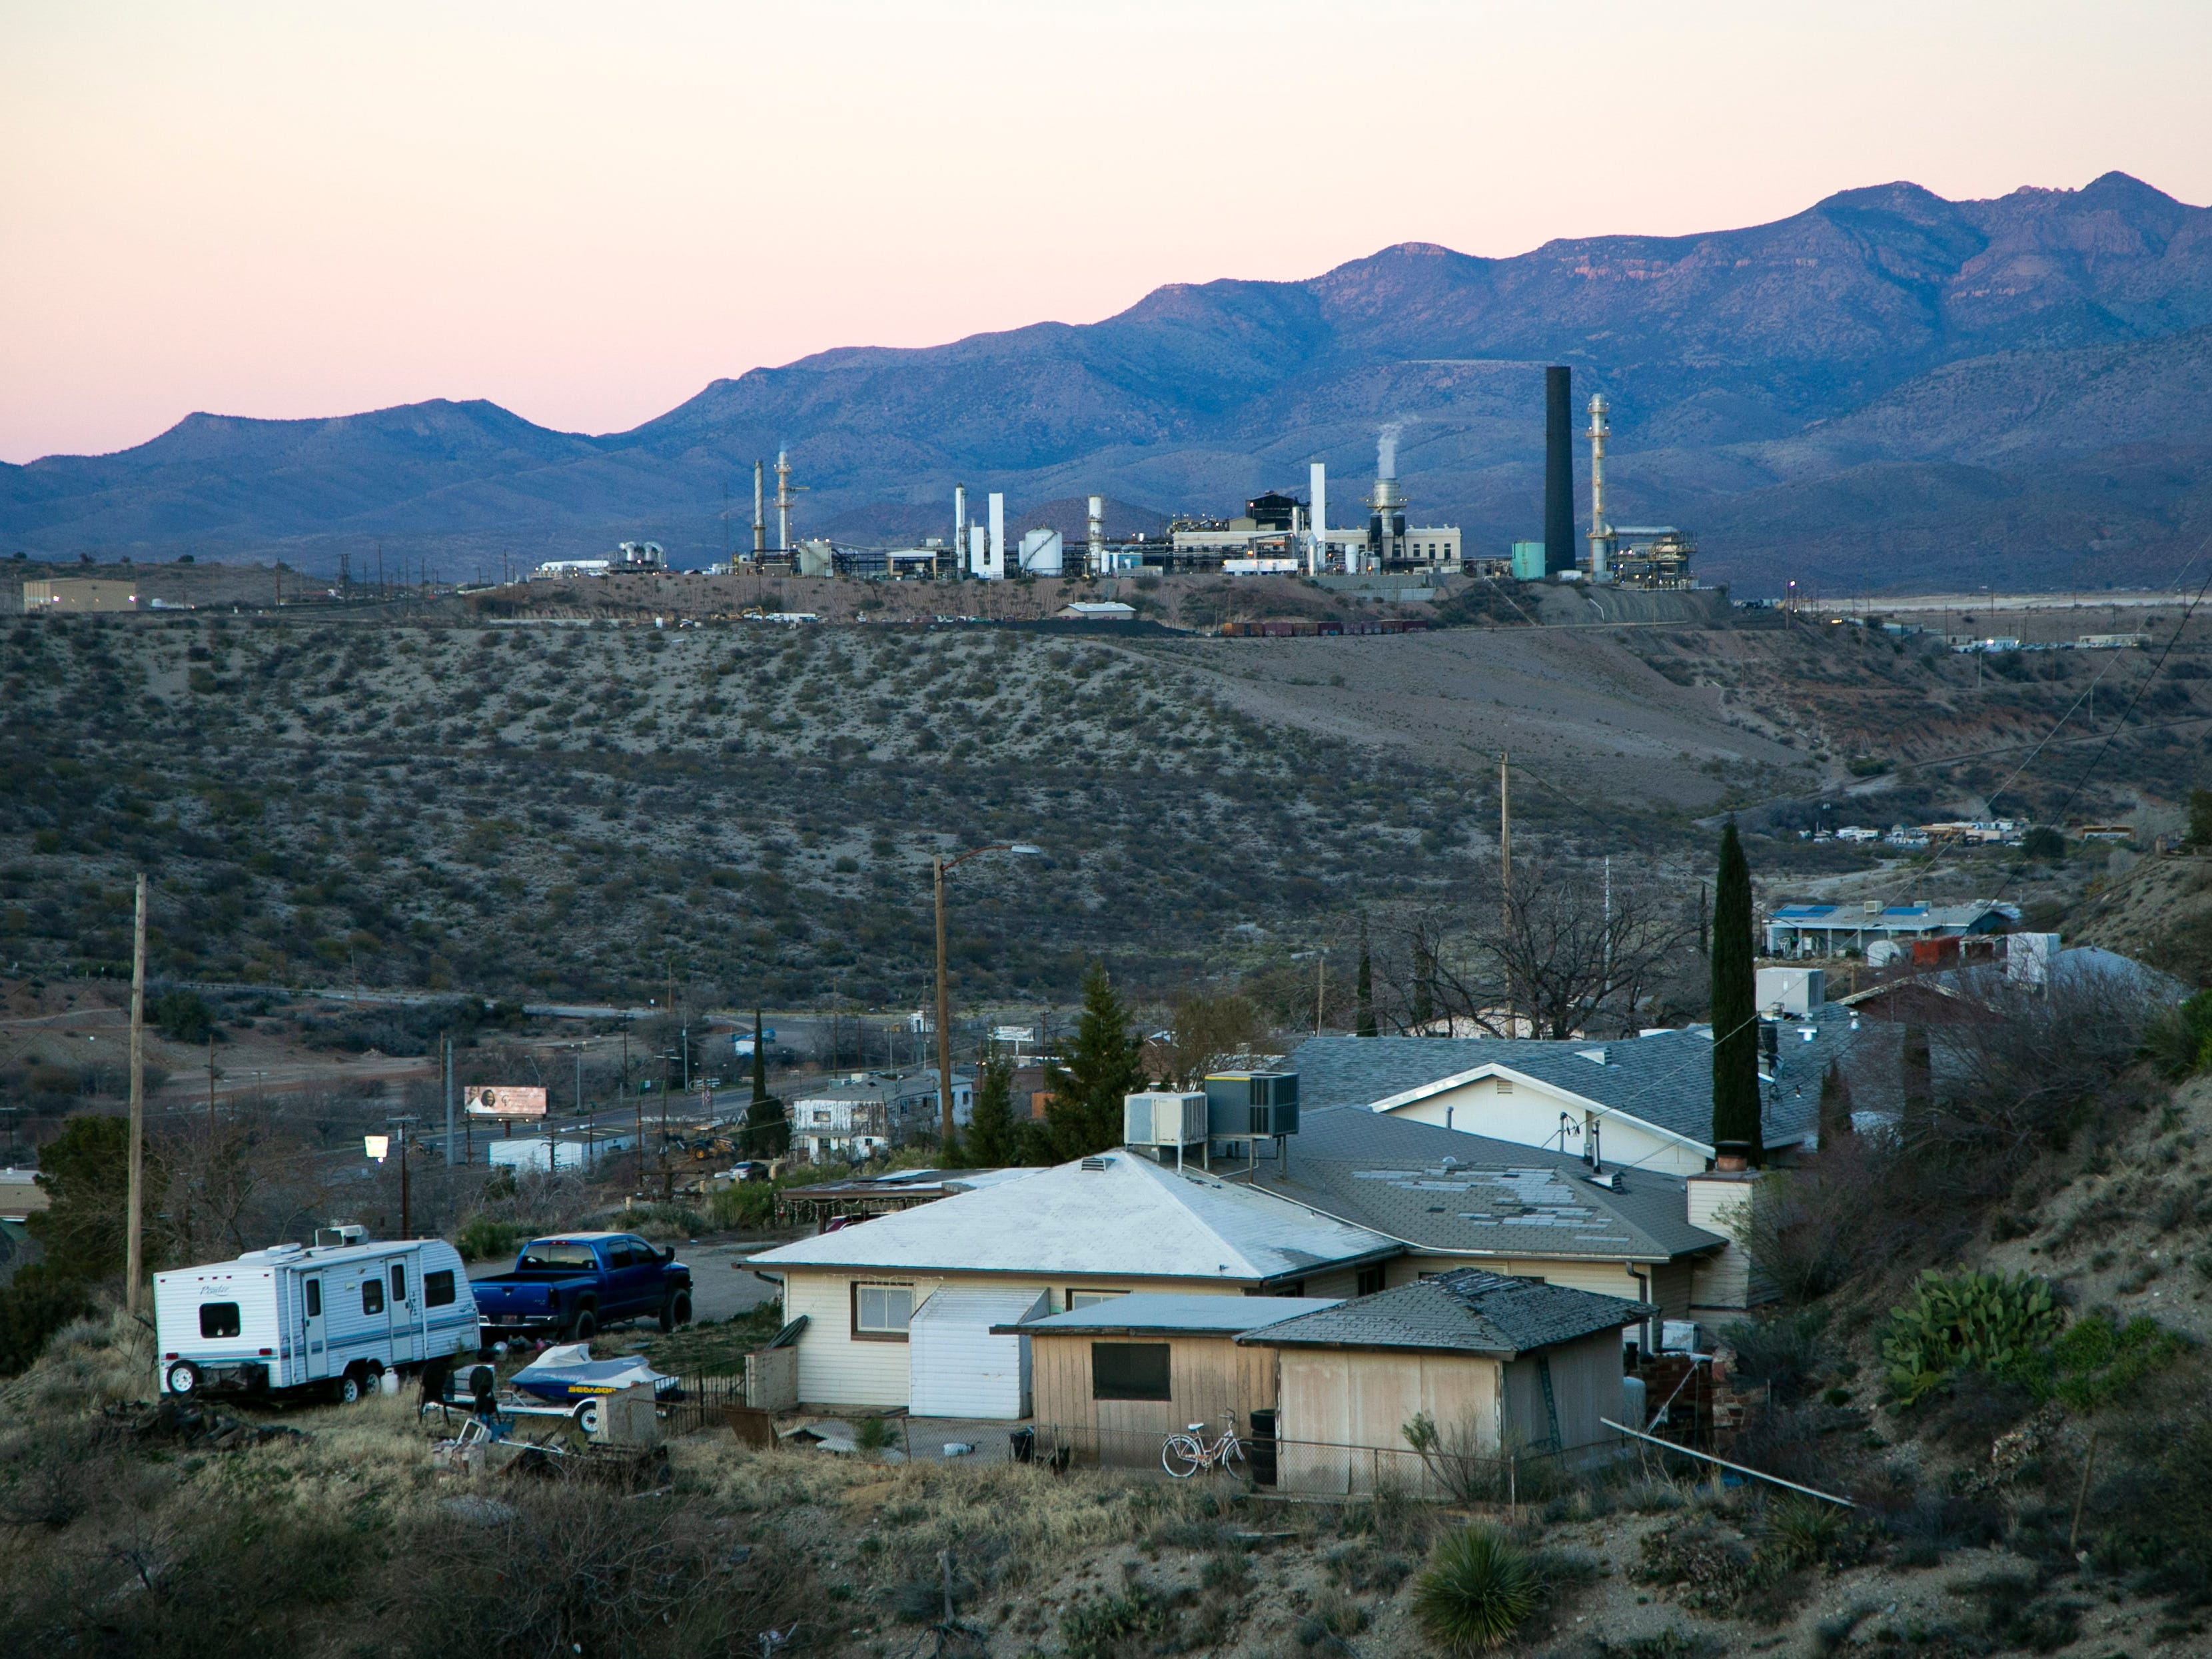 A house on a hillside in Miami, Ariz., is seen in front of the Freeport-McMoRan Copper & Gold mine in Claypool, Ariz., on January 24, 2019. Joe Campos worked at this mine in the late 1940s  which was then the Inspiration Consolidated Copper Company mine where he experienced racism because of his Mexican-American heritage. After working in the mine for several years, he re-enlisted in the military. It is believed that Staff Sgt. Joe Campos, a gunner on a B-26 bomber was likely the first American killed in the Korean War when his plane went down in the Yellow Sea on June 28, 1950.